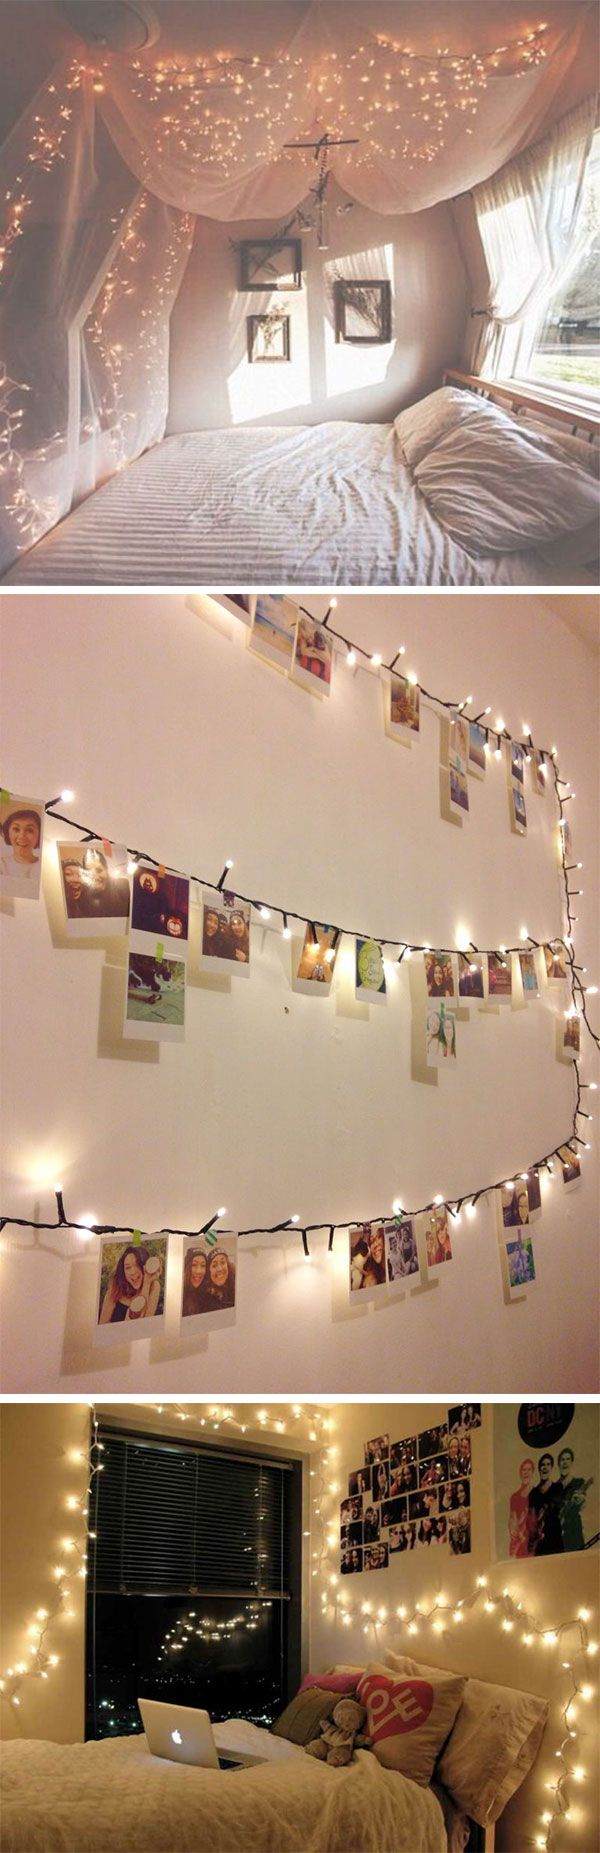 Diy Room Lighting Ideas. Cool DIY Bedroom Lighting Decoration Ideas ...